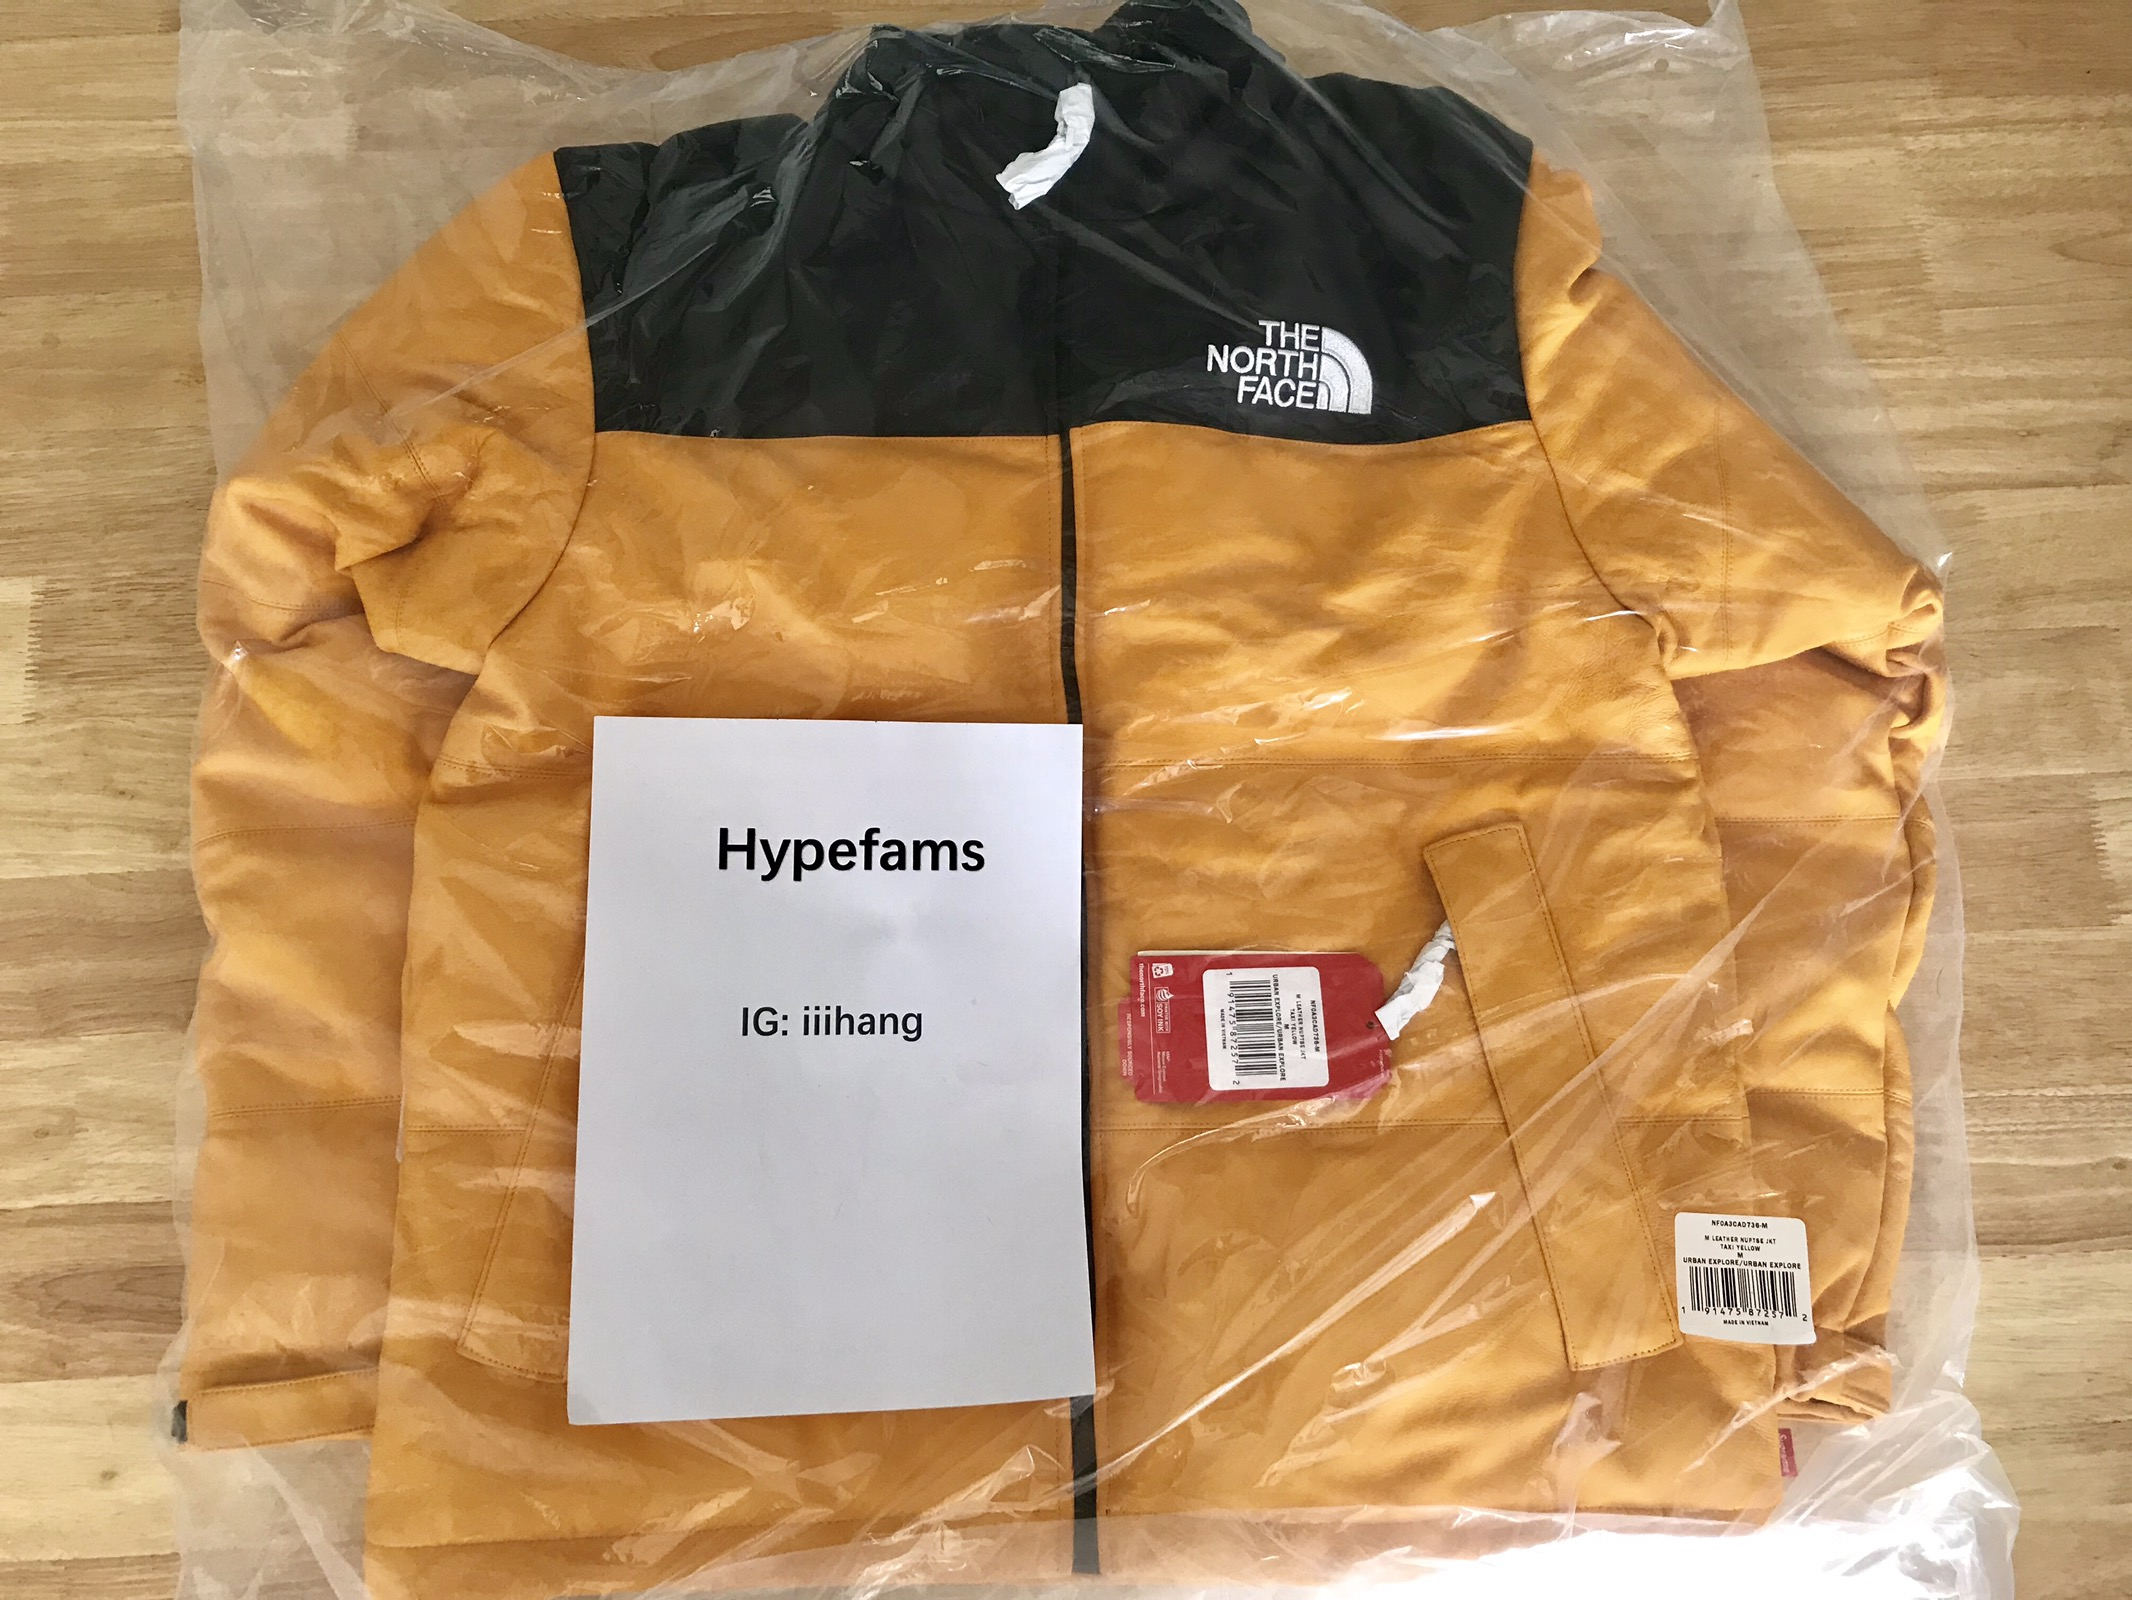 Supreme 17FW Leather Nuptse Jacket Yellow Size m - Leather Jackets for Sale  - Grailed 2ab21178a